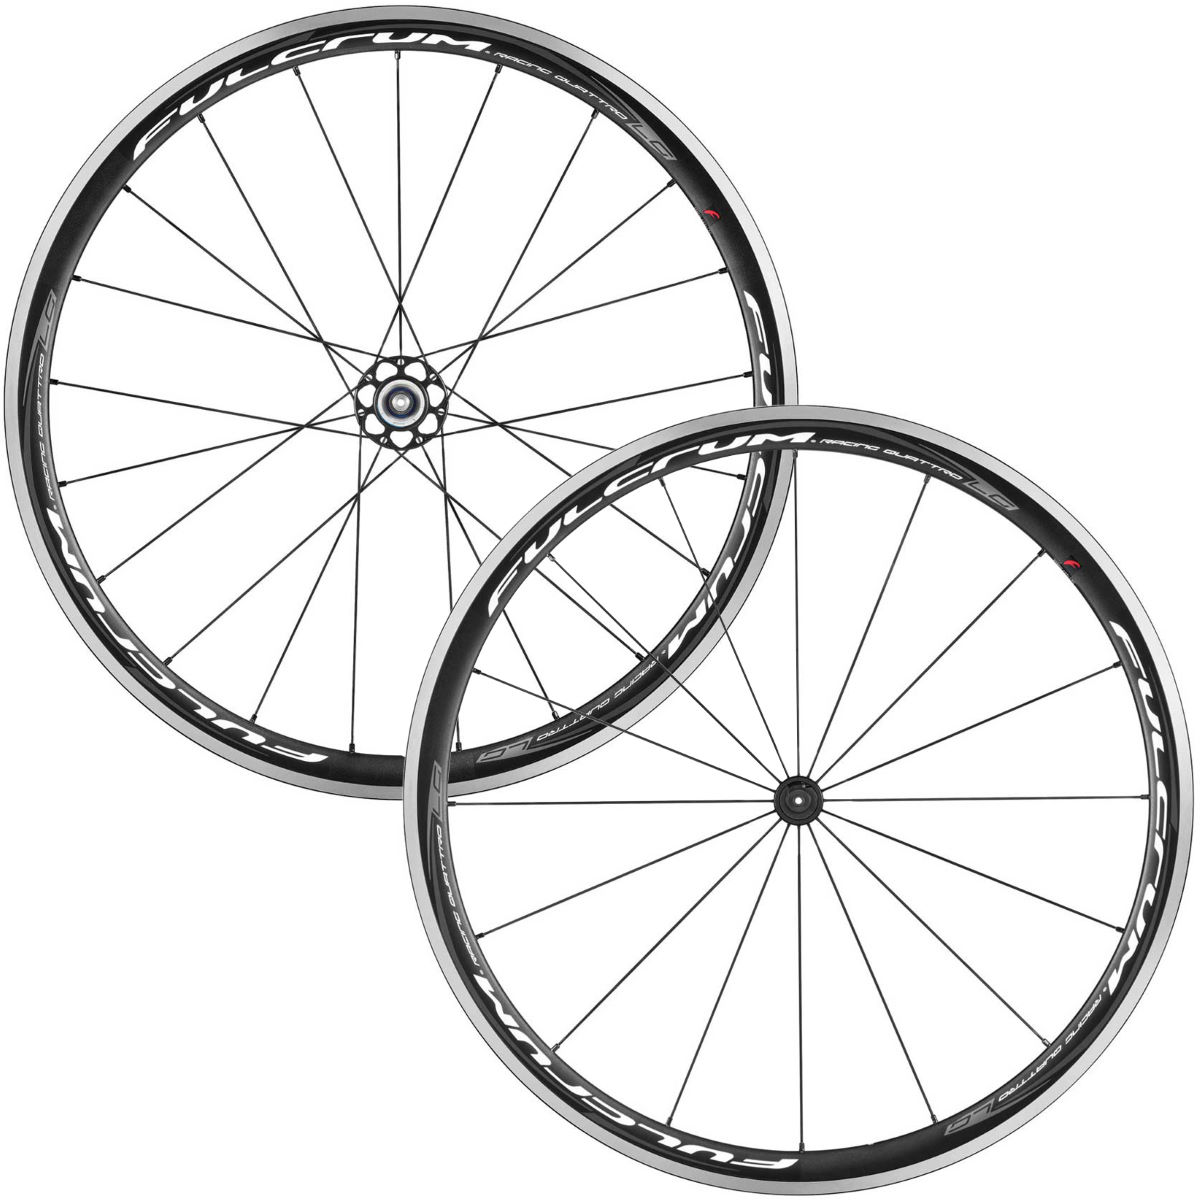 Fulcrum Racing Quattro LG Alloy Clincher Wheelset (2016)   Performance Wheels